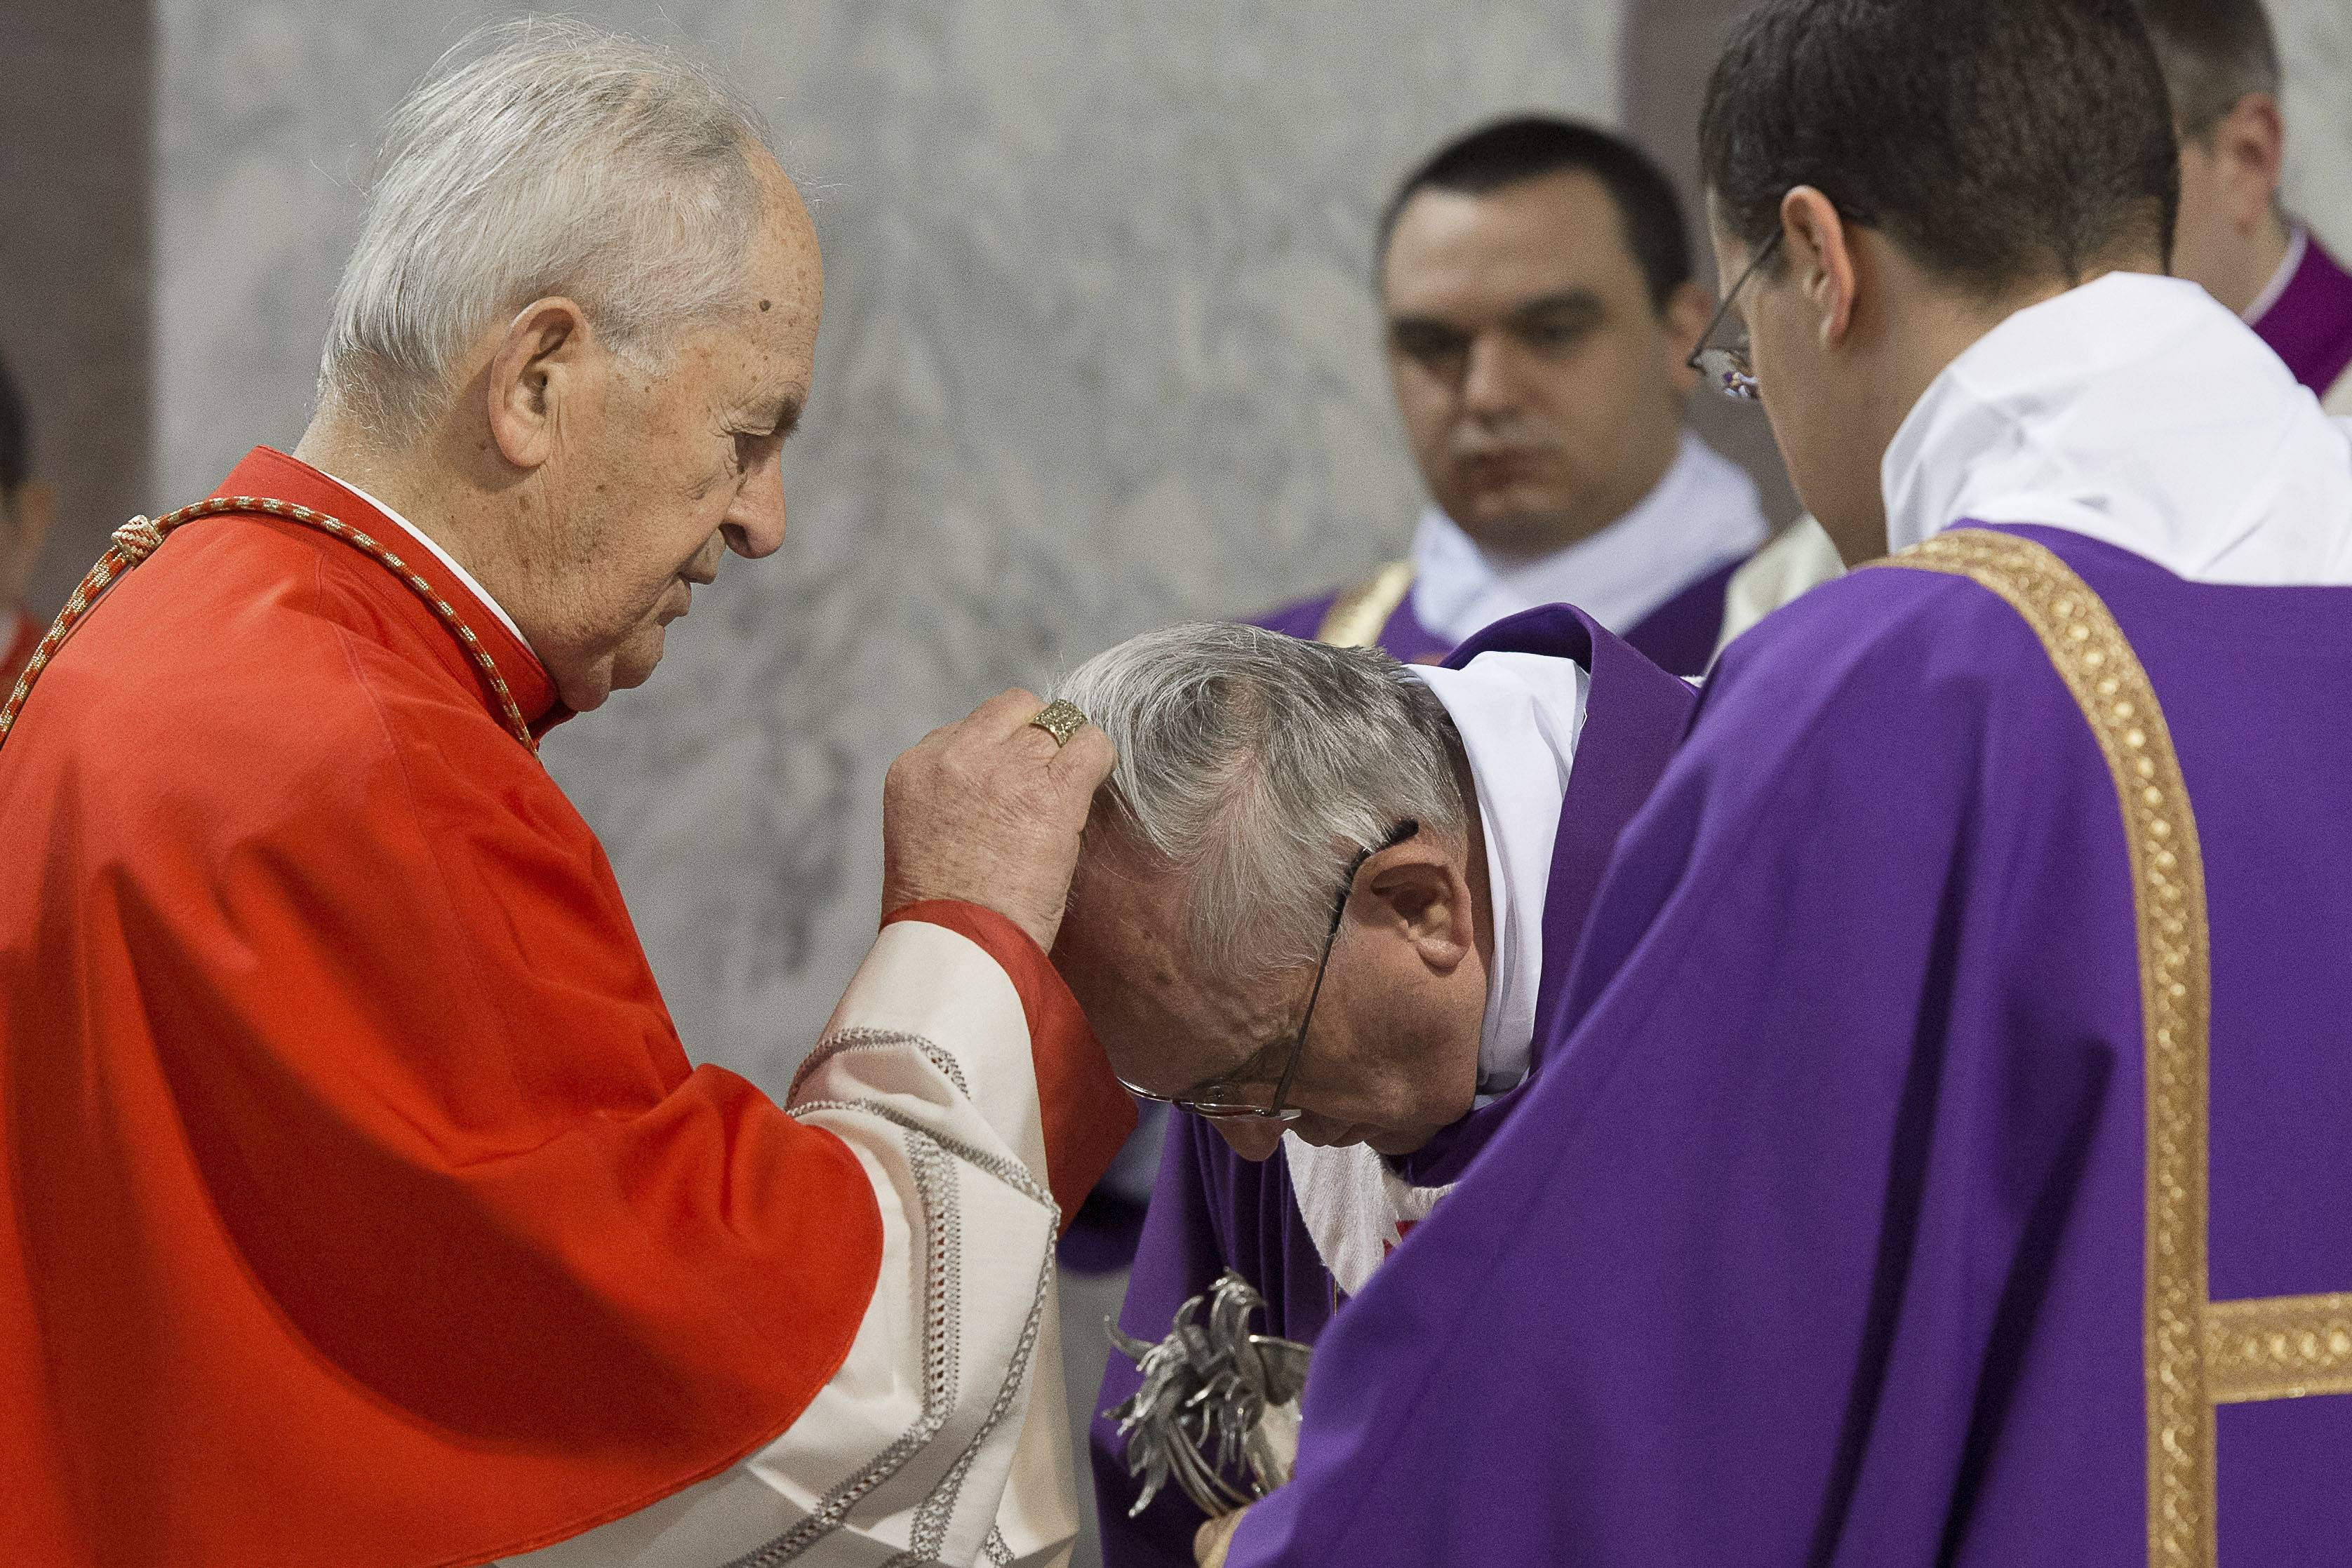 Pope Francis is sprinkled with ashes during the Ash Wednesday mass at the Santa Sabina Basilica in Rome.